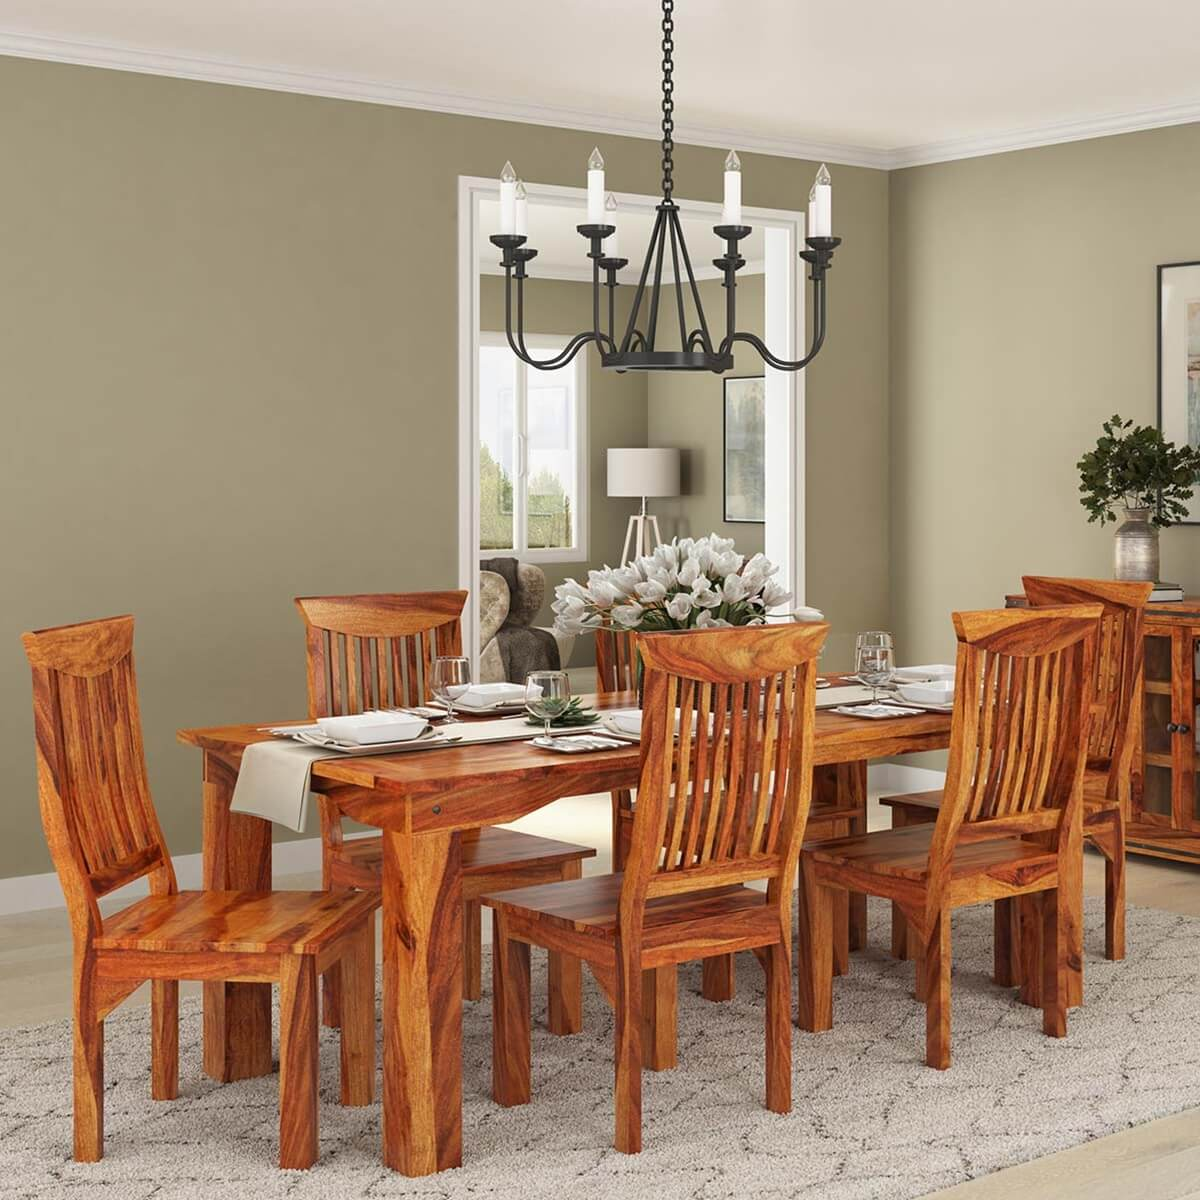 Solid Wood Kitchen Tables: Idaho Modern Rustic Solid Wood Dining Table & Chair Set